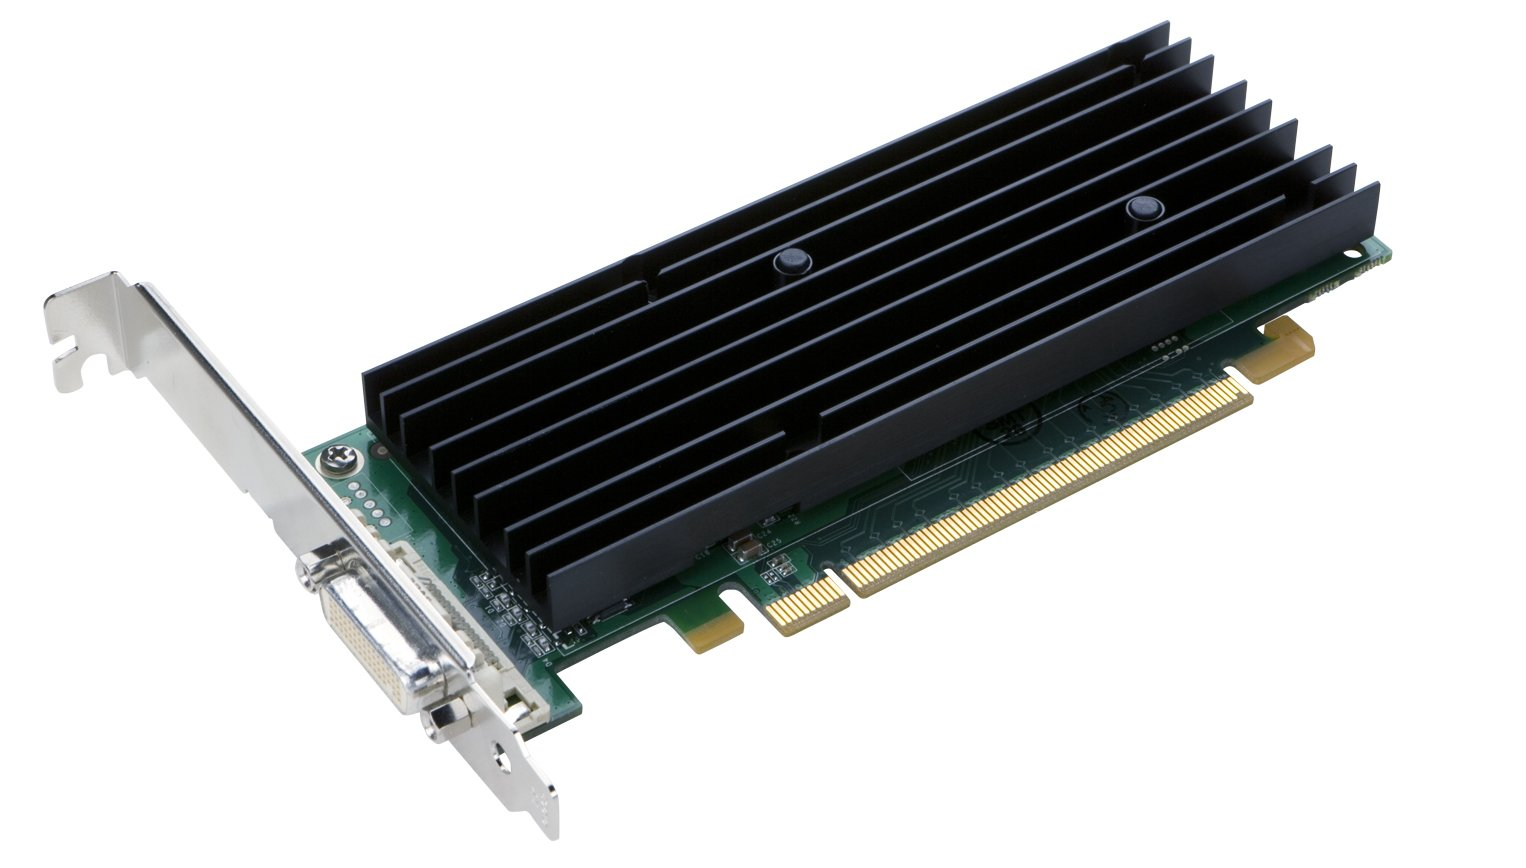 PNY NVIDIA Quadro NVS 290 by 256MB DDR2 PCI Express x16 DMS-59 to Dual DVI-I SL or VGA Profesional Business Graphics Board, VCQ290NVS-PCIEX16-PB